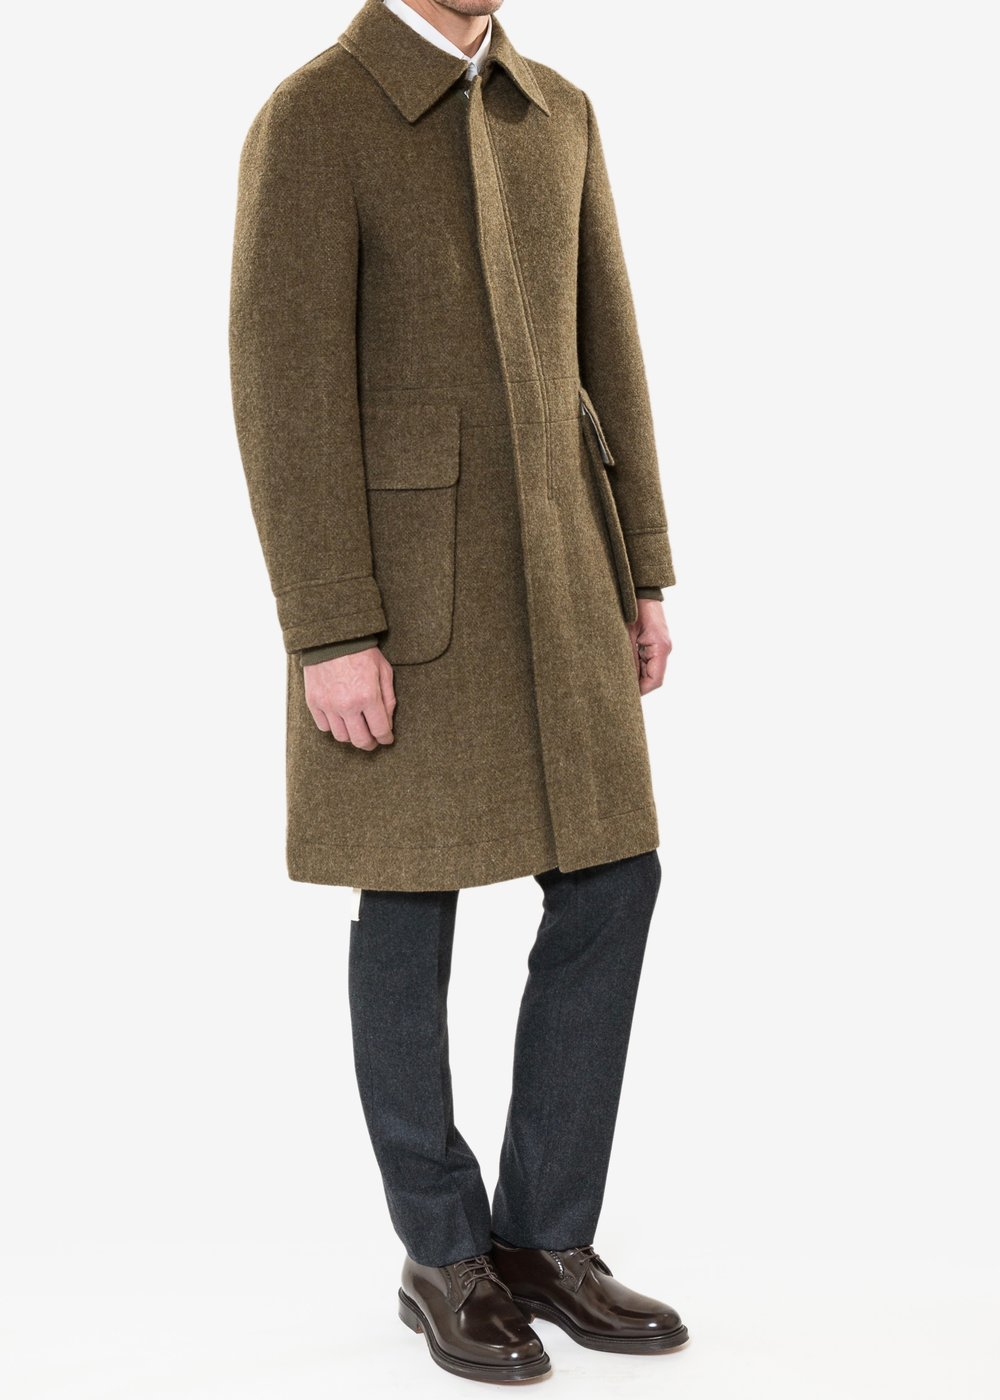 Mr Smith Paris AW18 - Coat